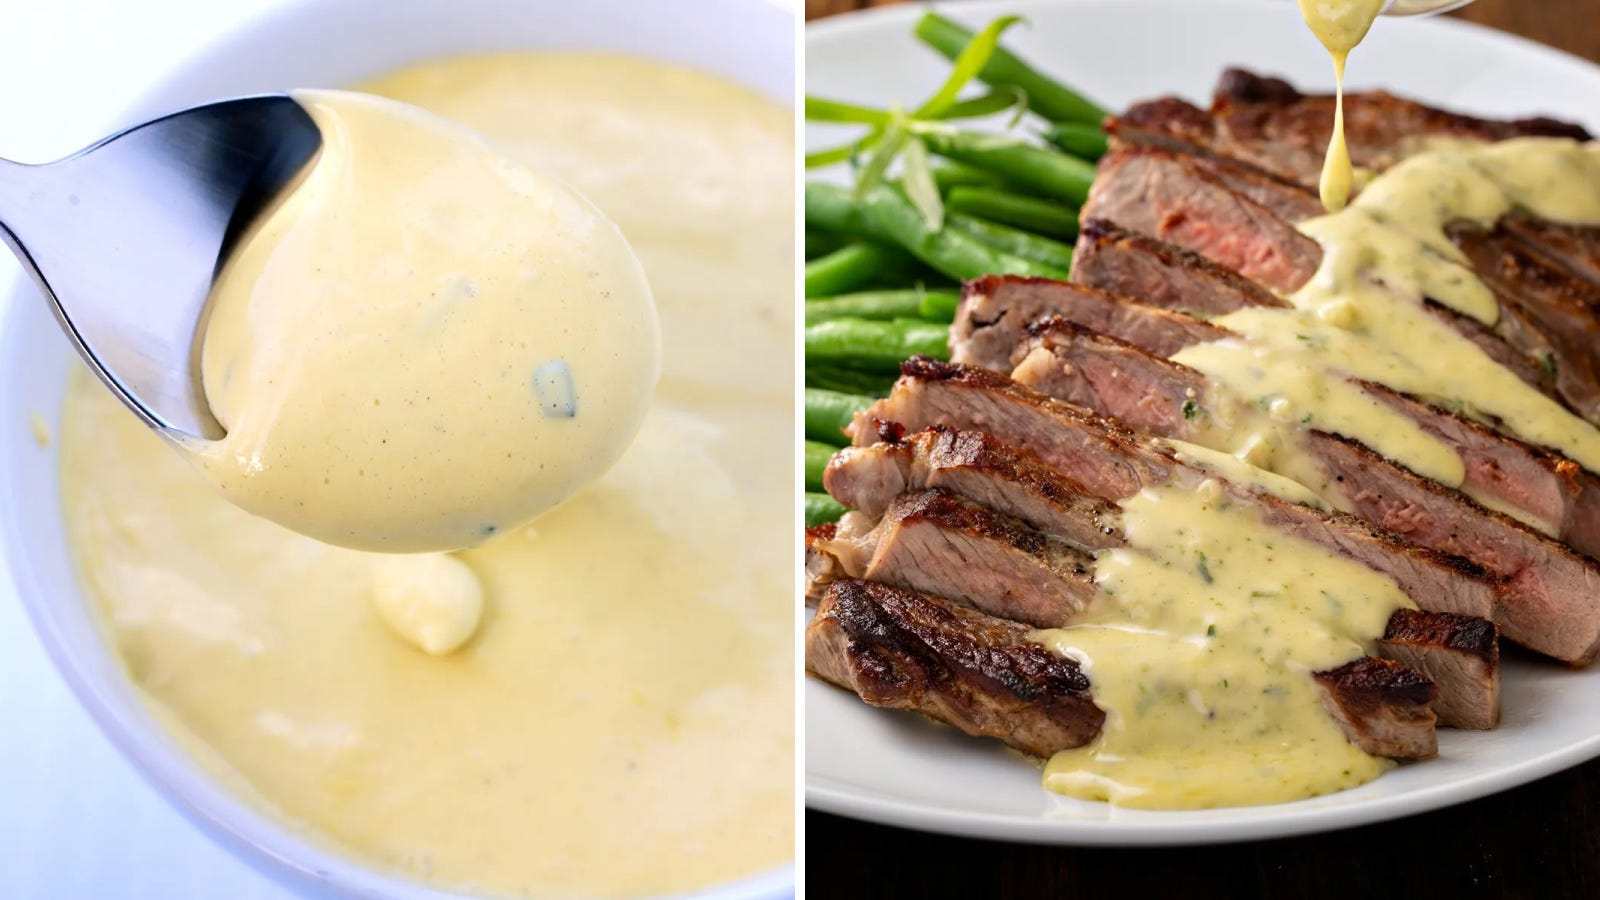 Two images of warm bearnaise sauce, one displaying the thickened sauce, and the other drizzling a generous amount over a hot steak cooked medium.